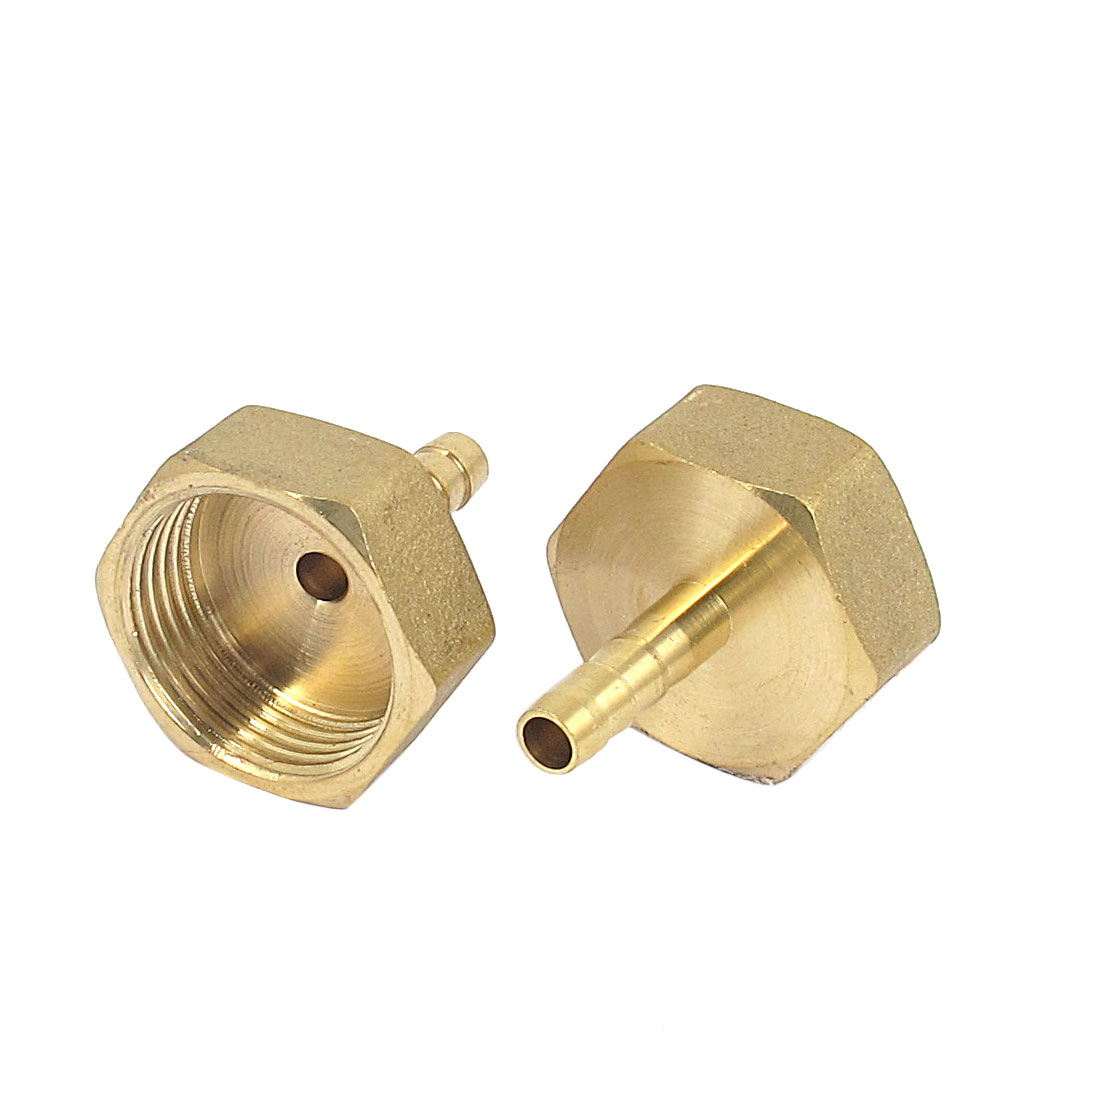 Brass 6mm Hose Barb 3/4BSP Female Thread Quick Joint Connector Adapter 2PCS